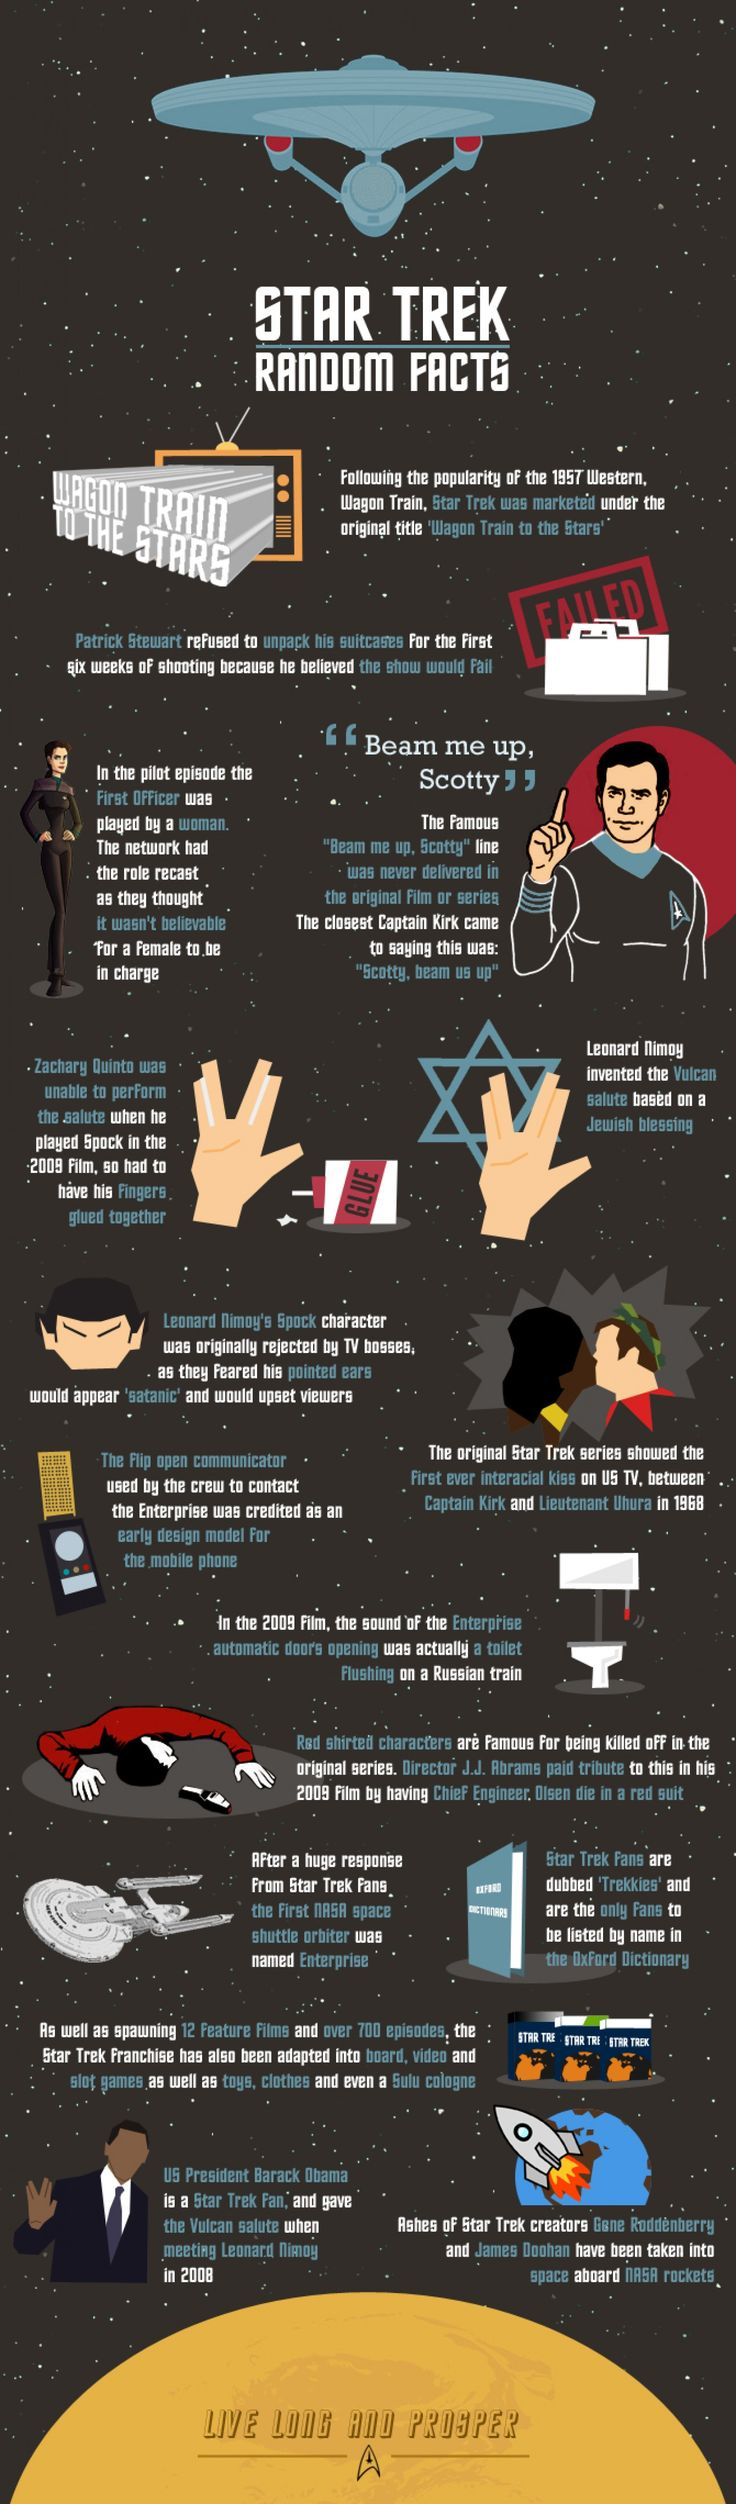 Star Trek Random Facts #Infographic #startrek